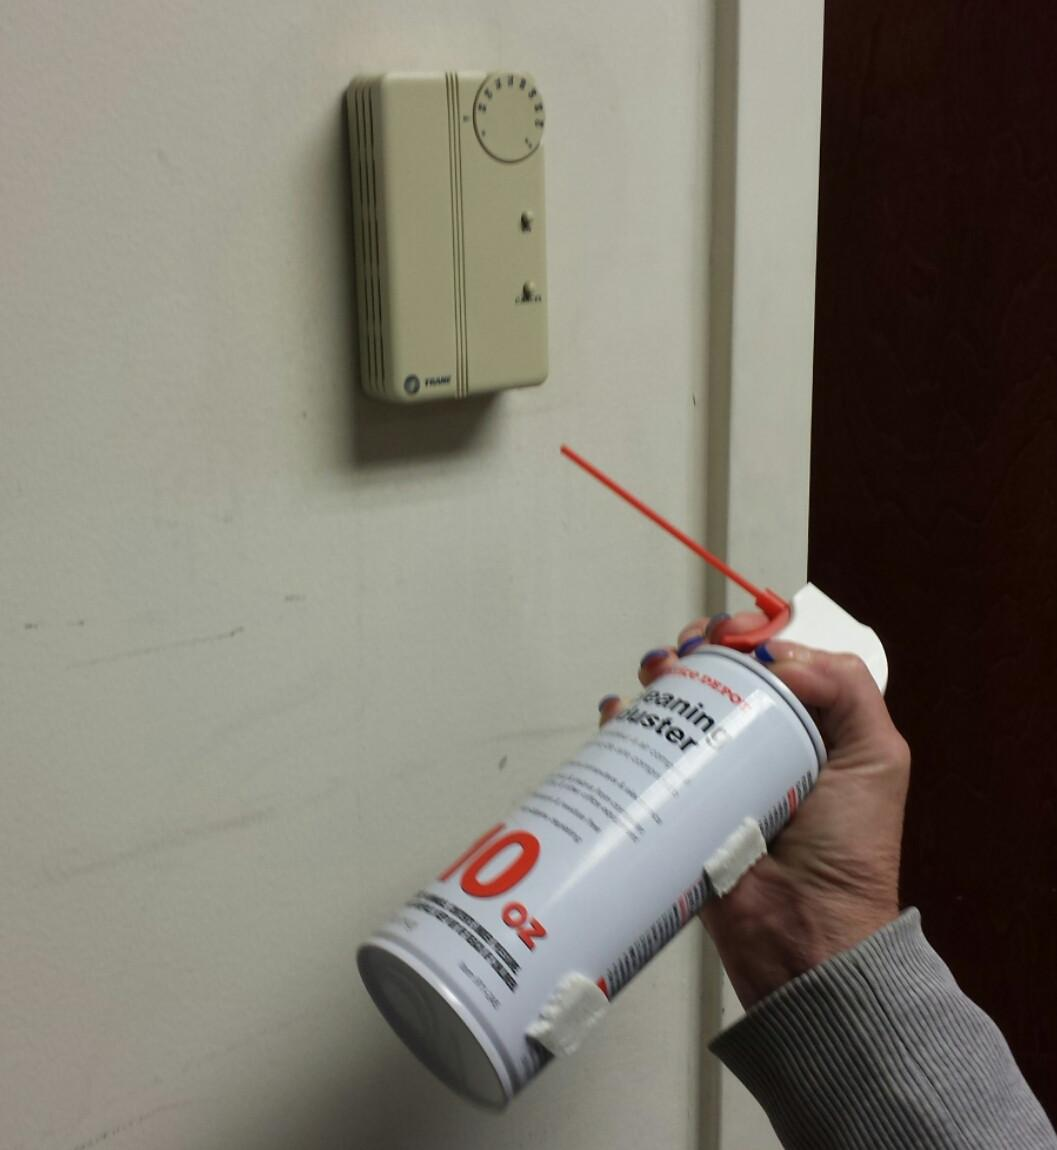 Our office doesn't let us adjust the thermostat, but my coworker figured out a workaround when she's cold. -   Misc